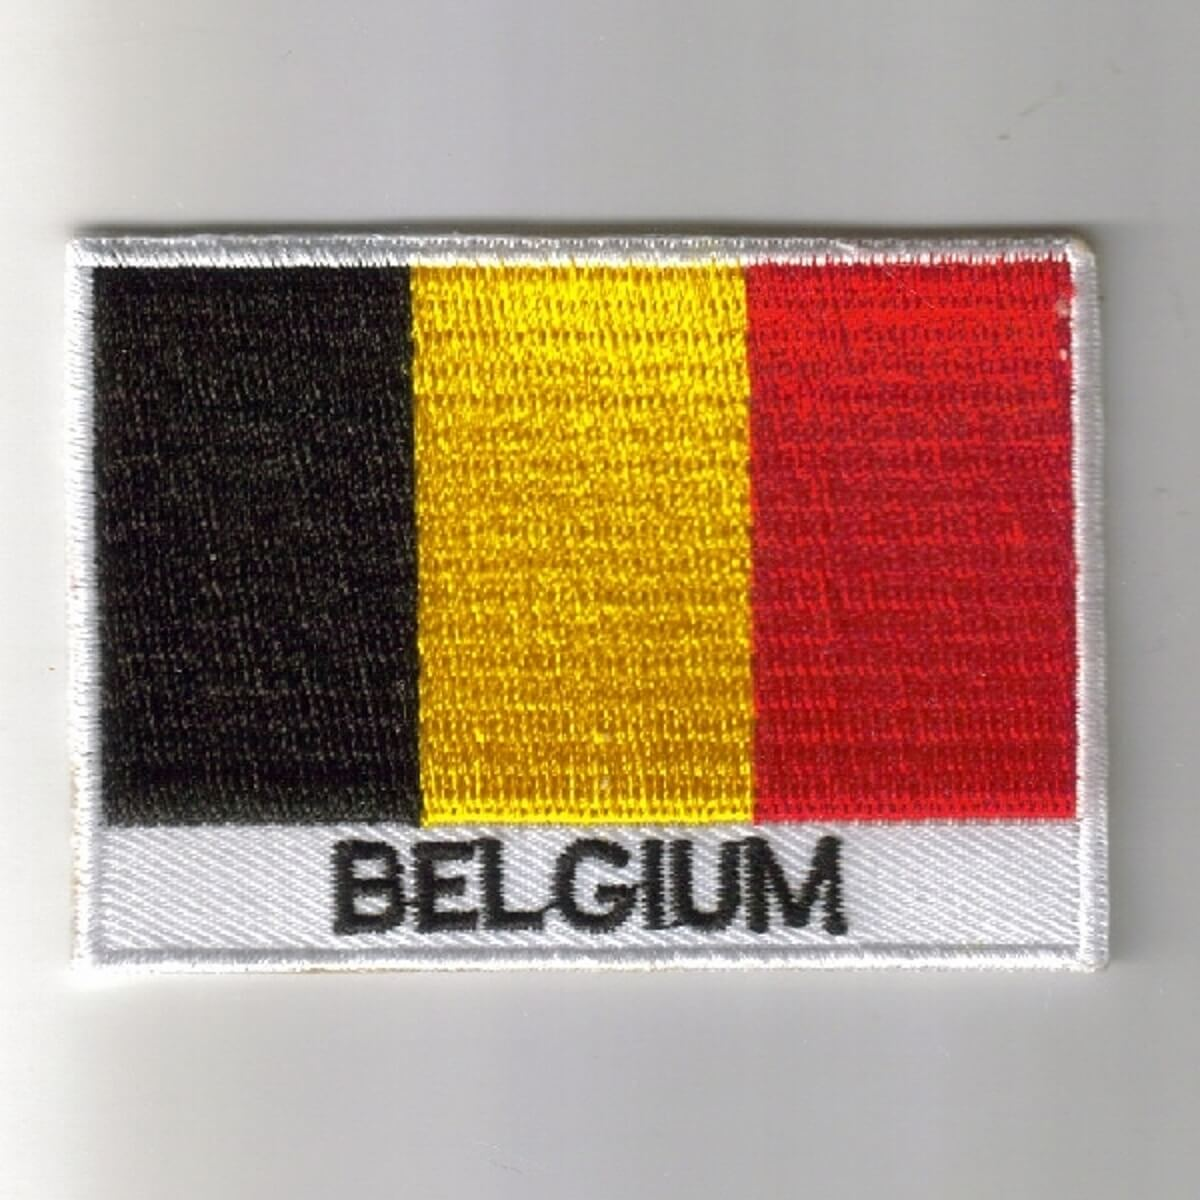 Belgium embroidered patches - Country flag Belgium patches / iron on badges